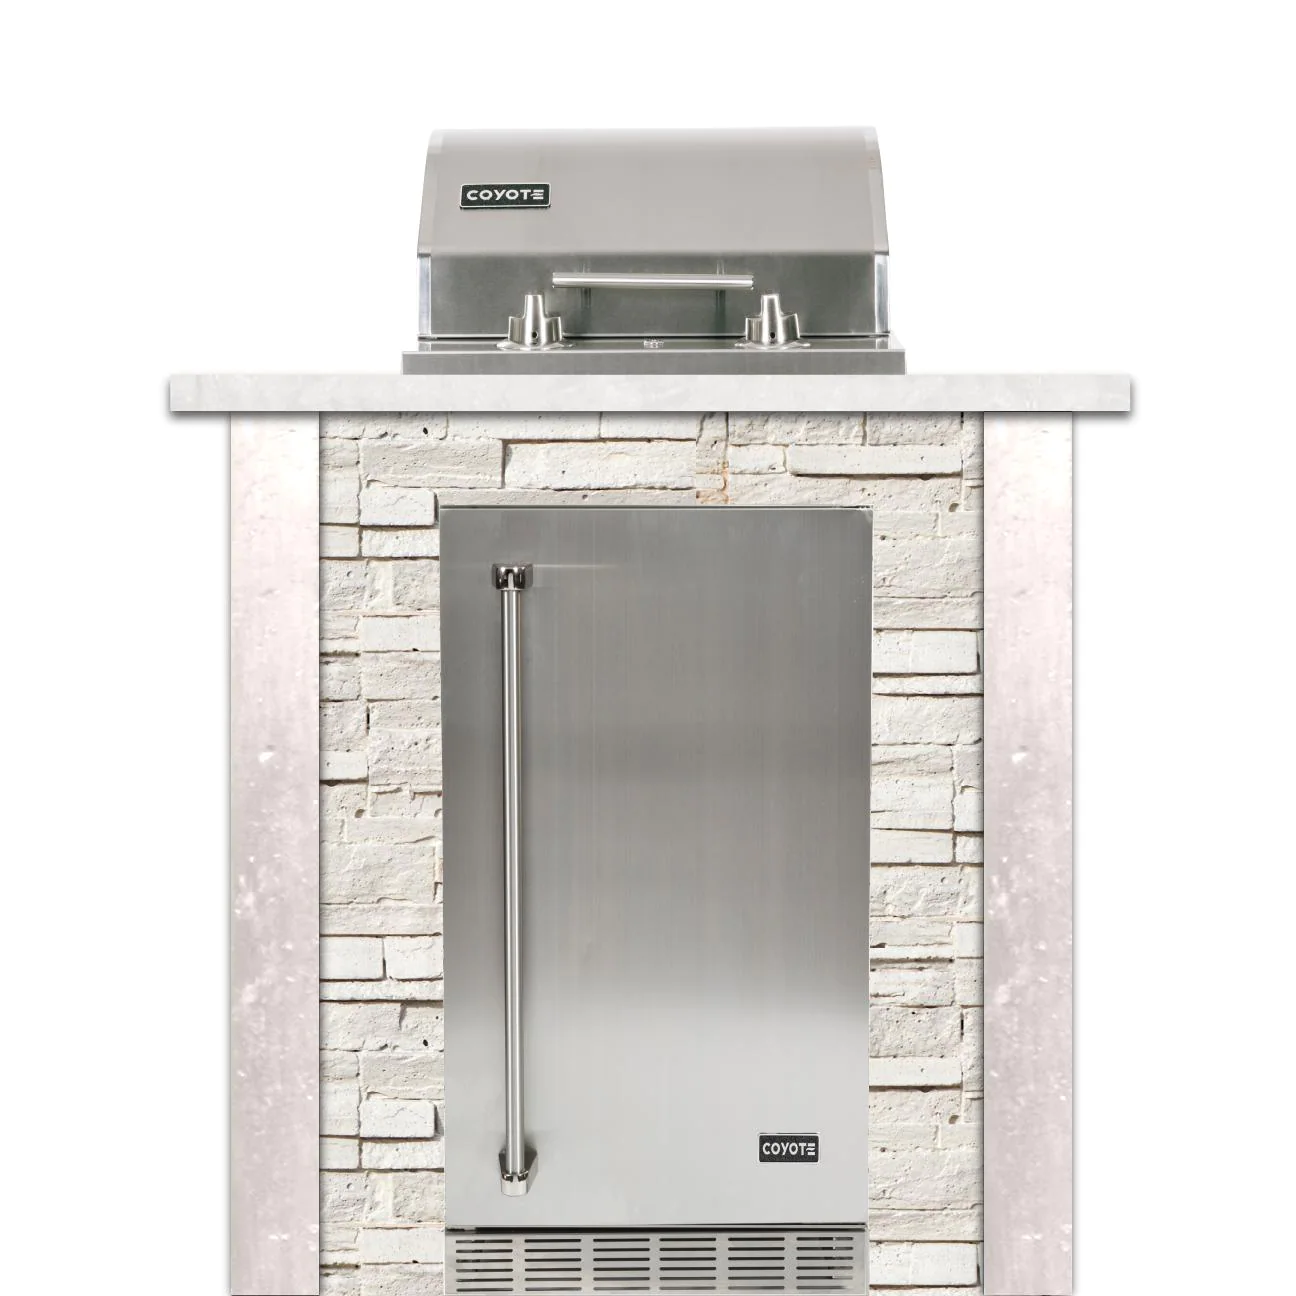 Coyote Ready-To-Assemble 3 Ft Outdoor Kitchen Island With 18-Inch Electric Grill And Right Hinge Refrigerator - Stacked Stone/Modern White - RTAC-E3F-SW-C1EL120SM-R